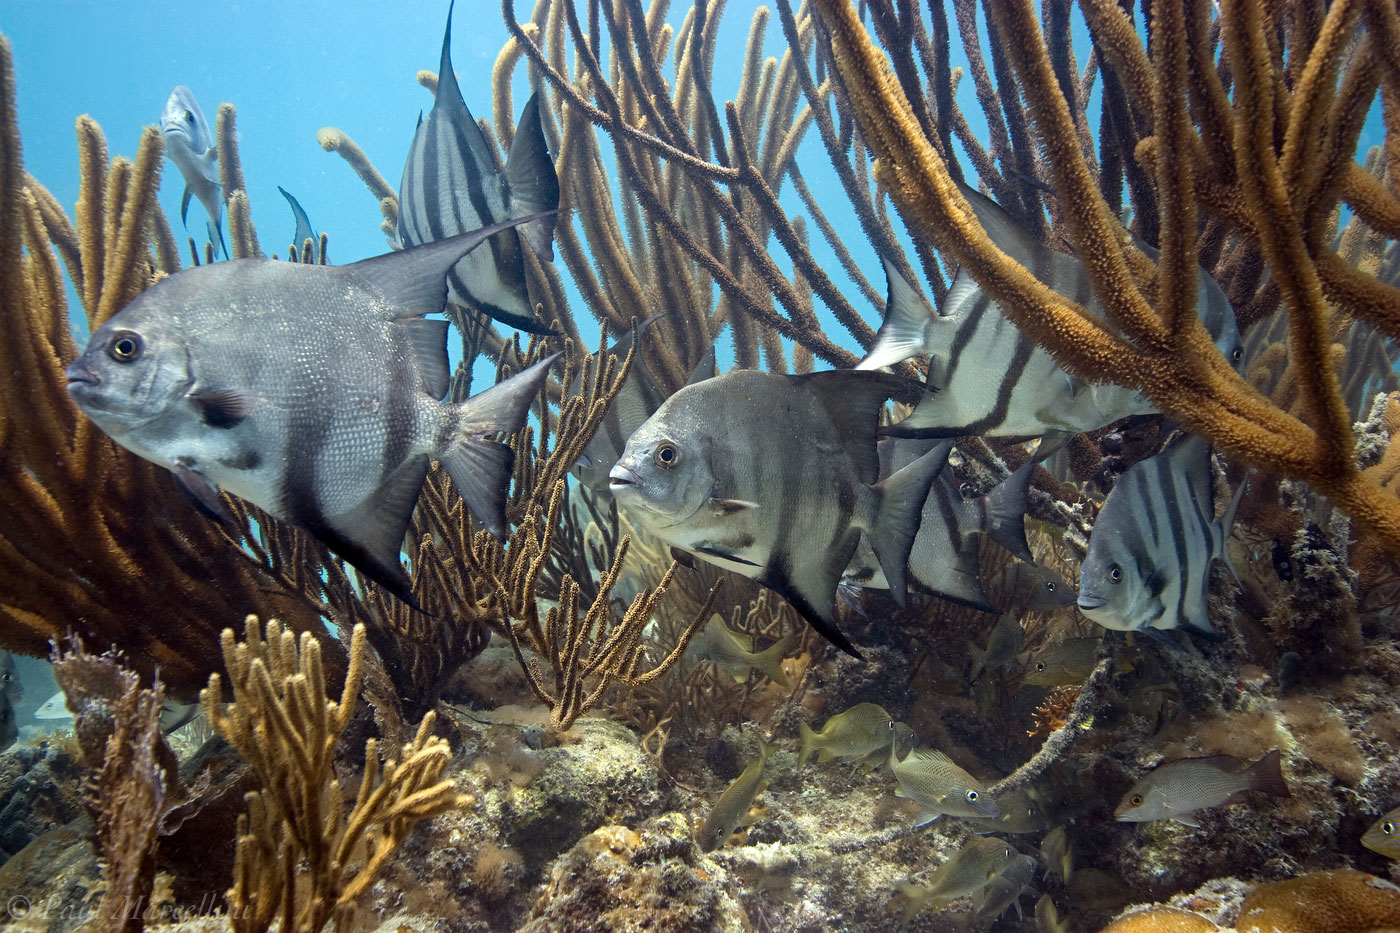 Atlantic spadefish, Chaetodipterus faber, florida keys, photo